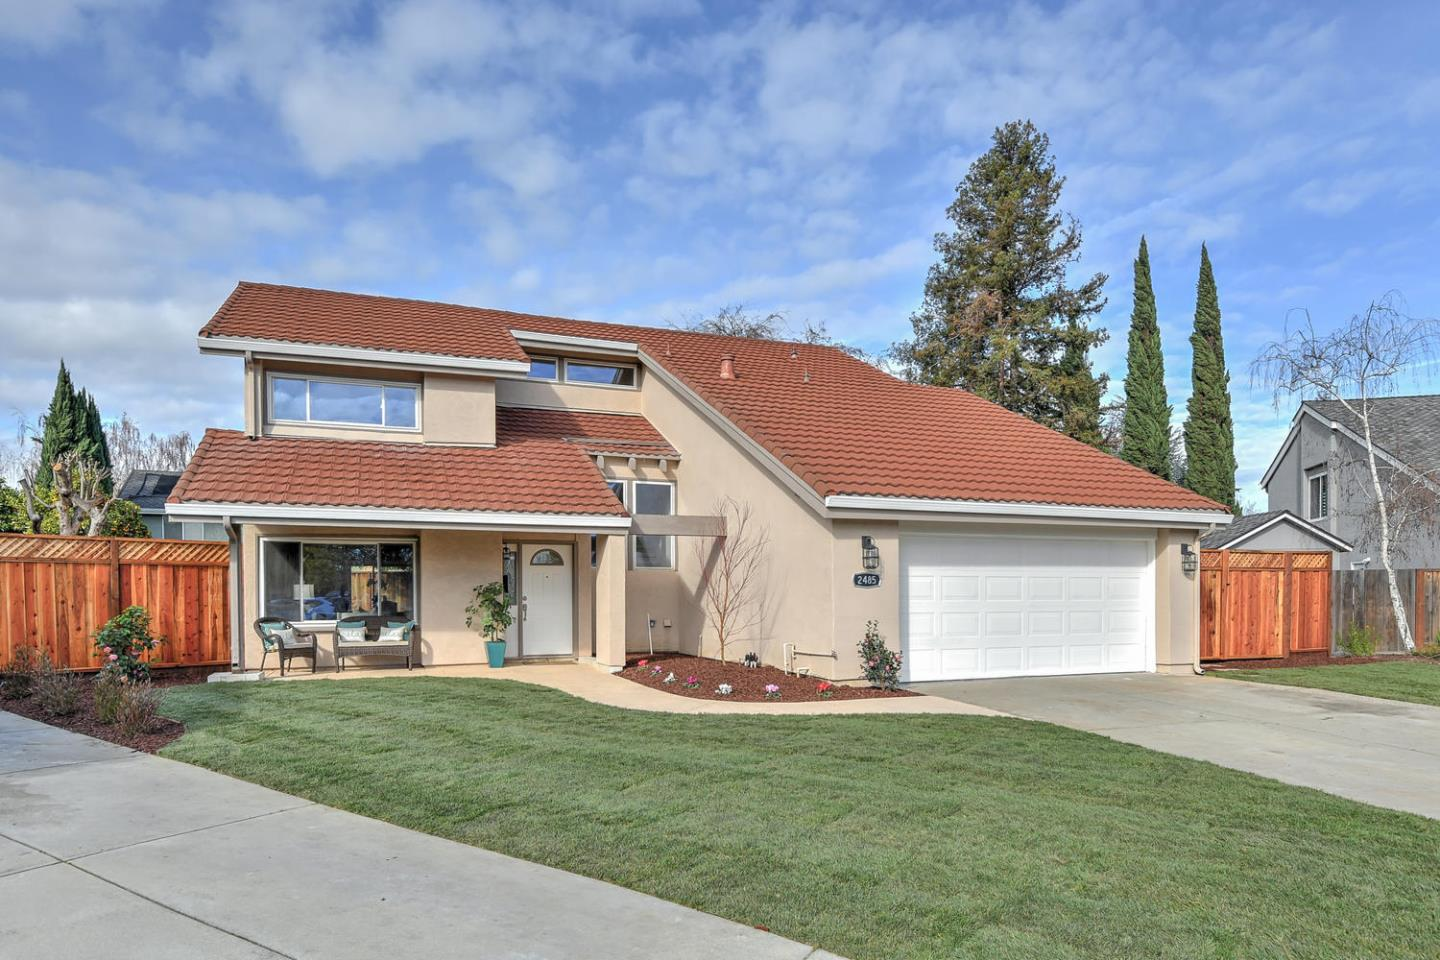 Detail Gallery Image 1 of 1 For 2485 Bachmann Ct, San Jose, CA 95124 - 4 Beds | 2/1 Baths